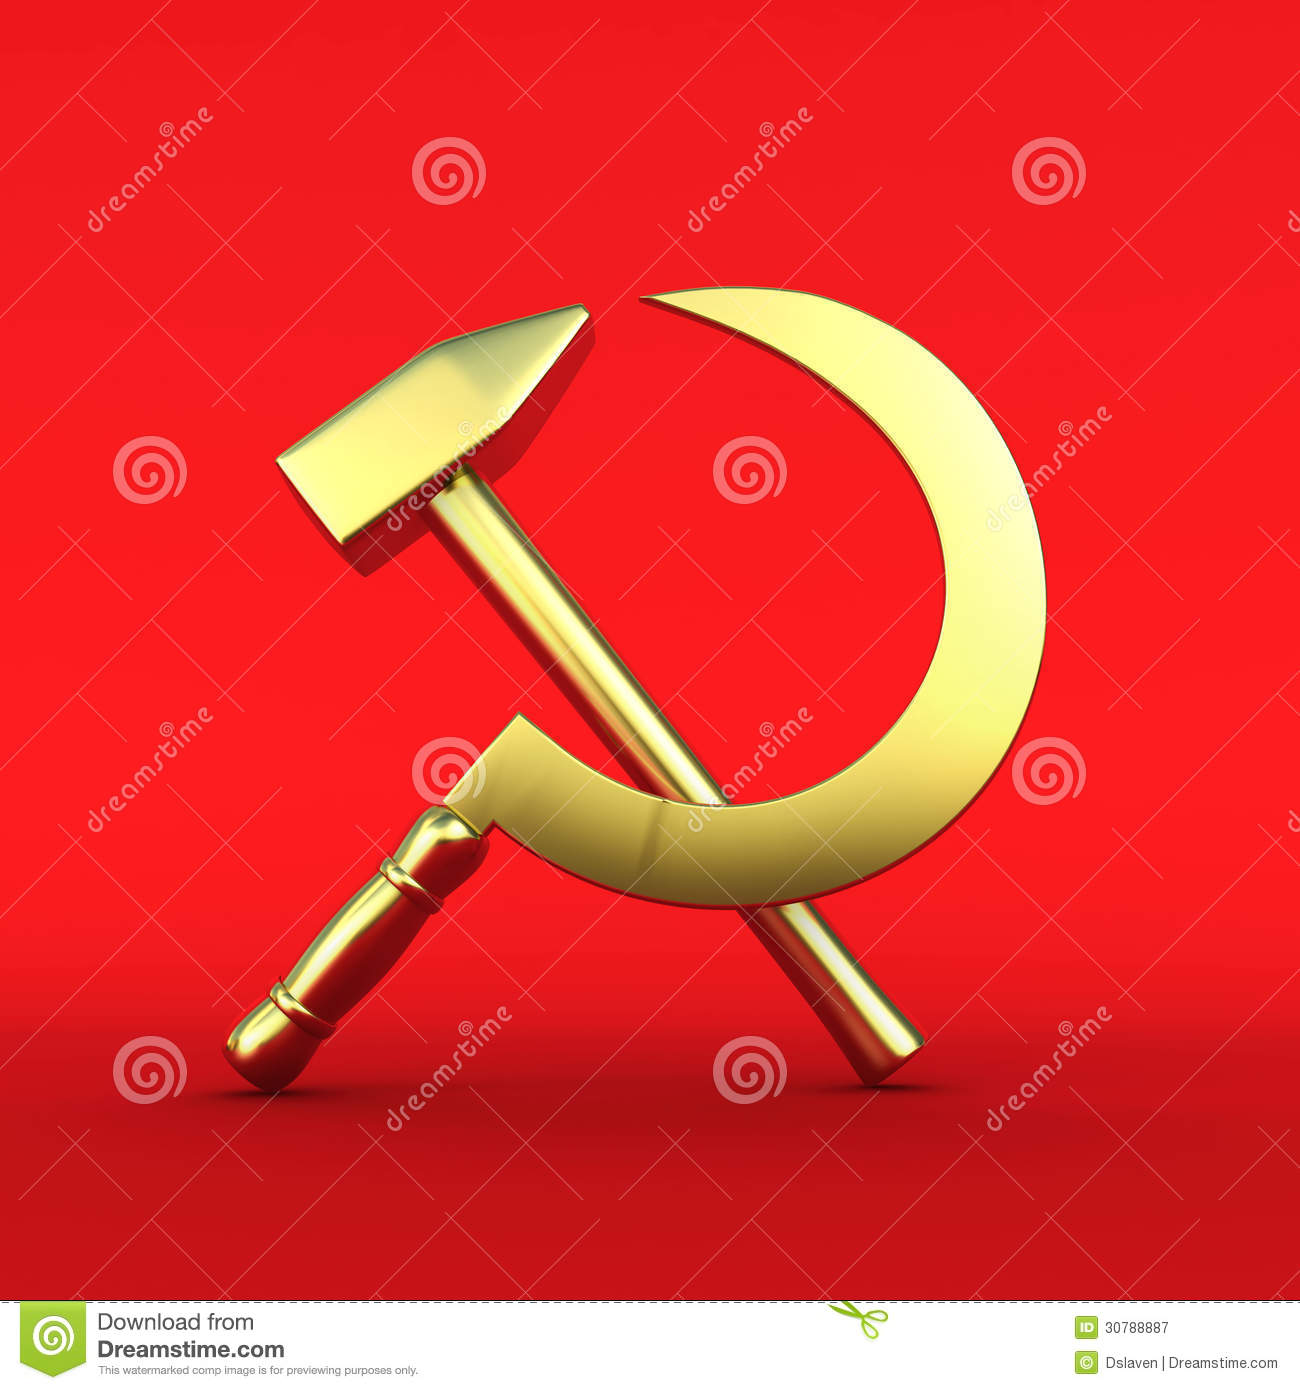 how to draw hammer and sickle